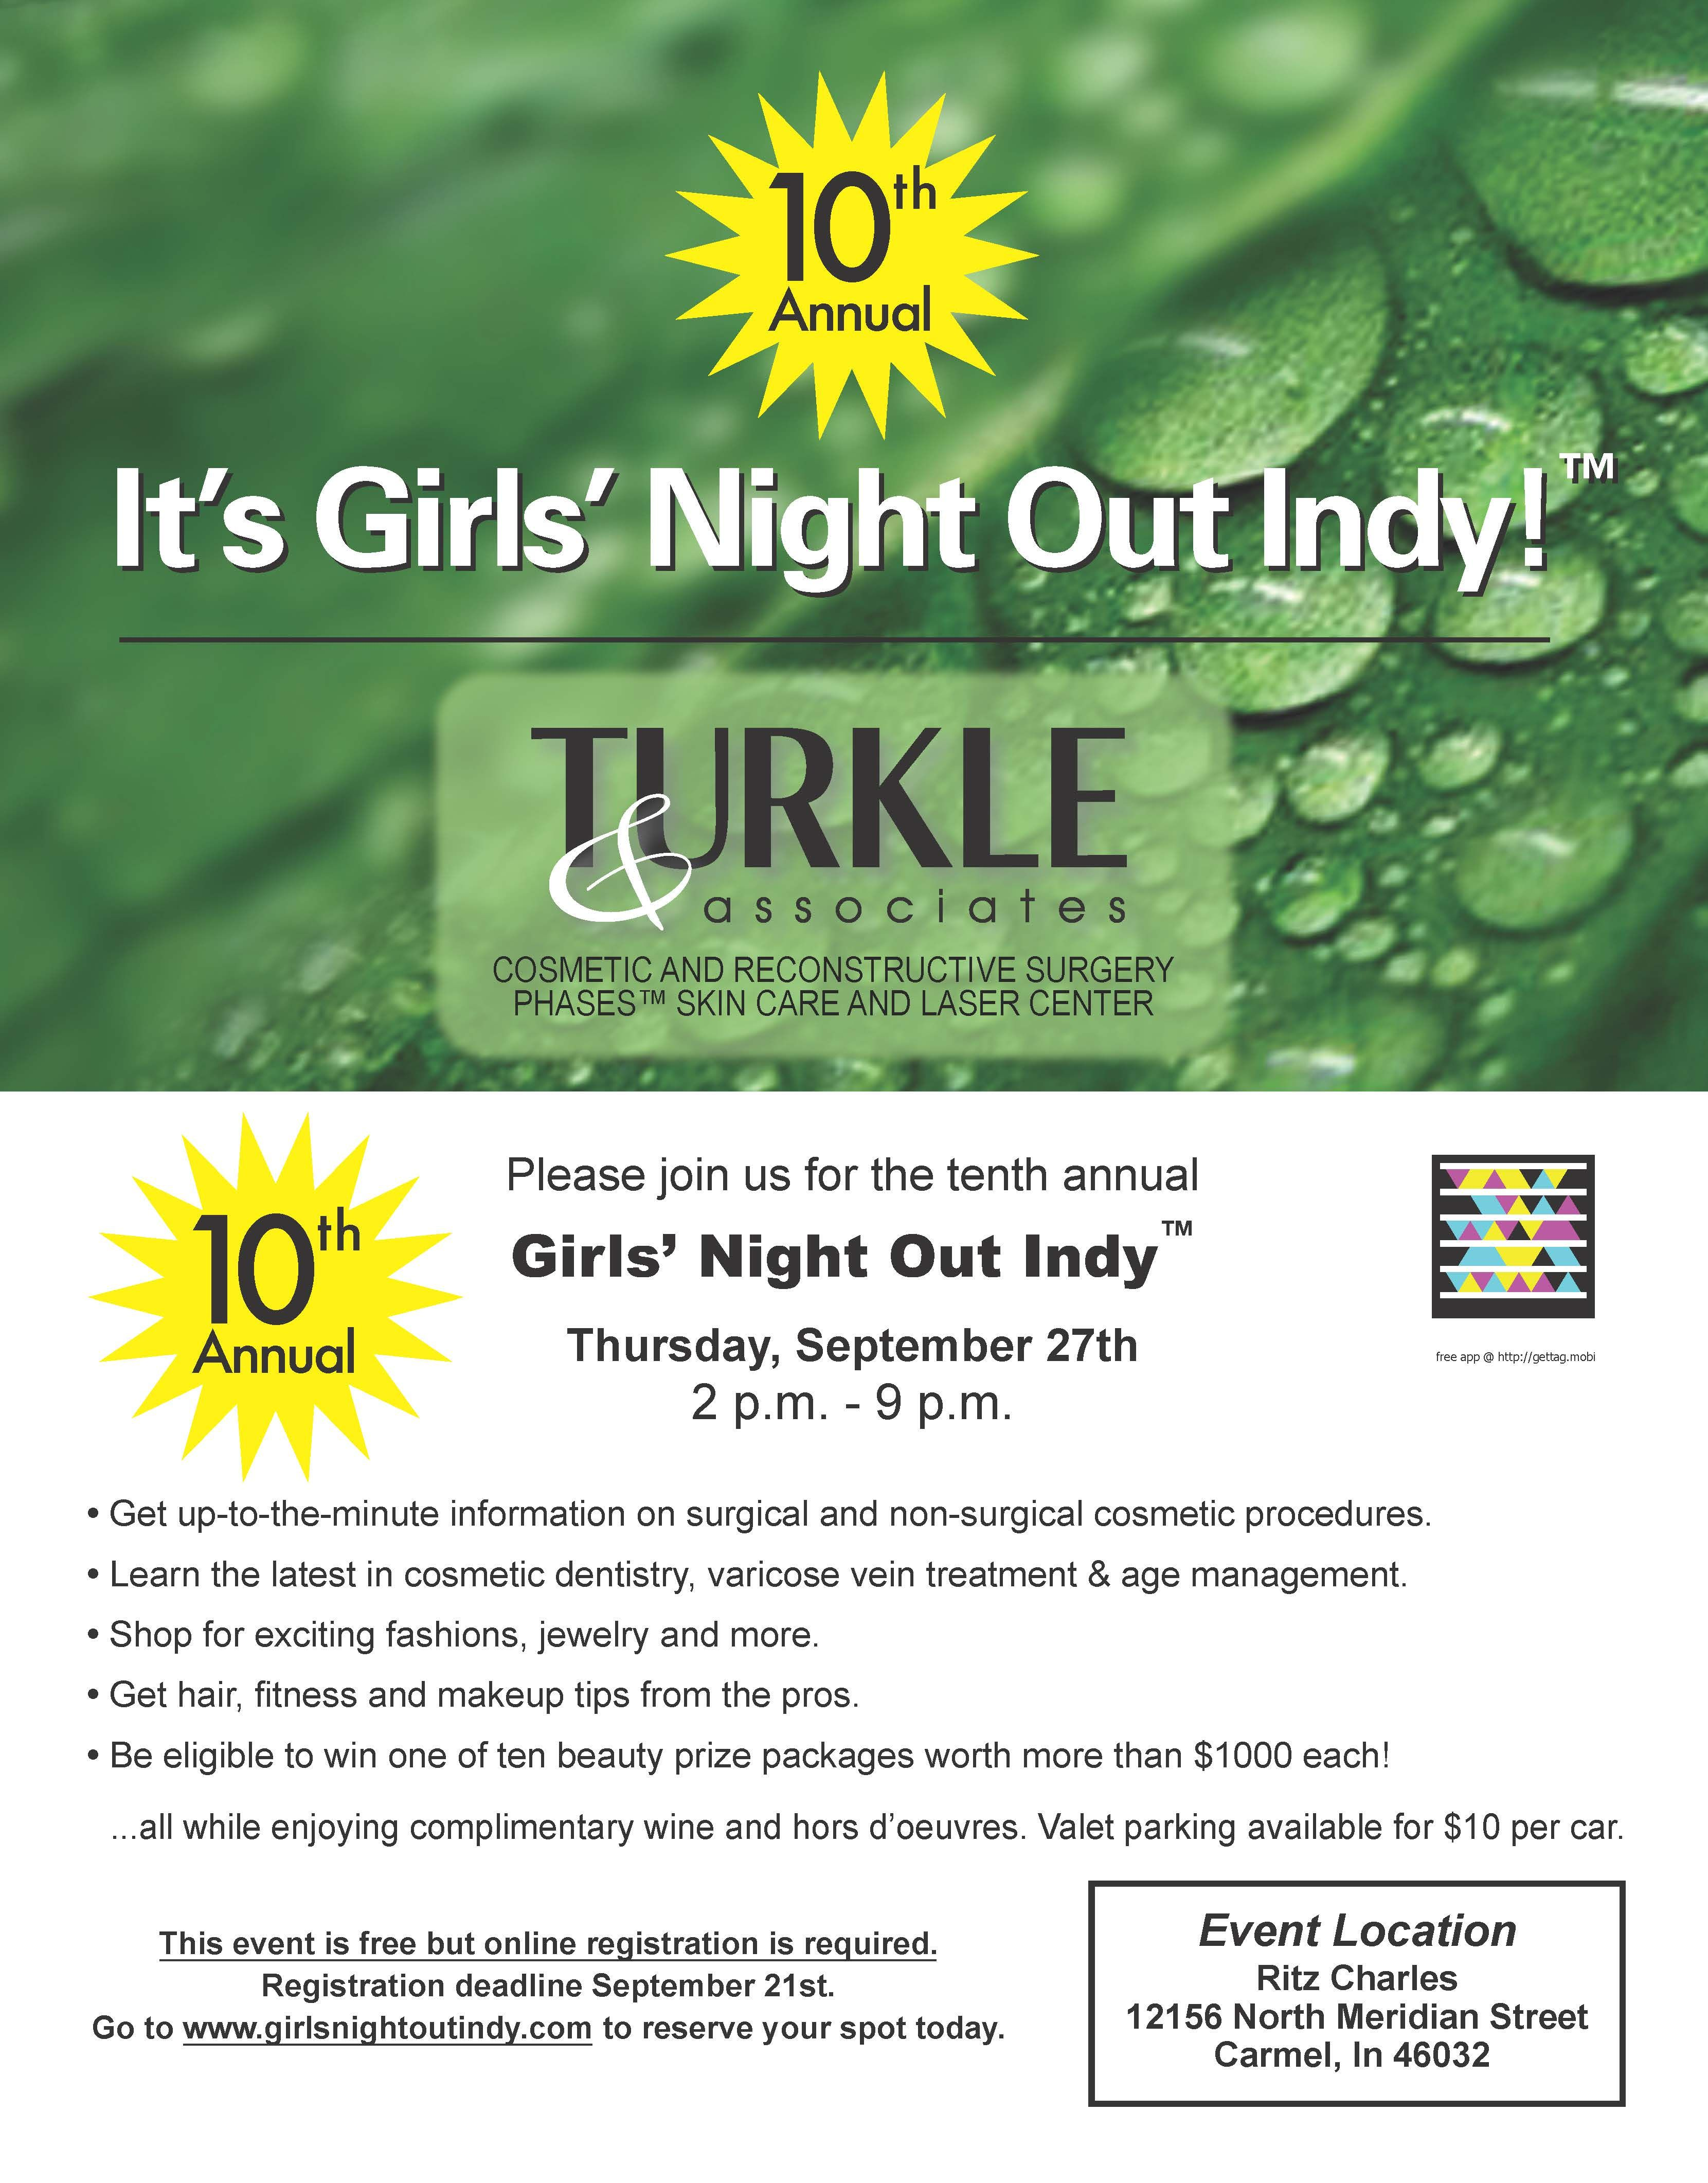 Oh Yeah Its That Time Of Year Again Its The 10th Annual Girls Night Out Indy Brought To You By Turkle Associates In Carmel In